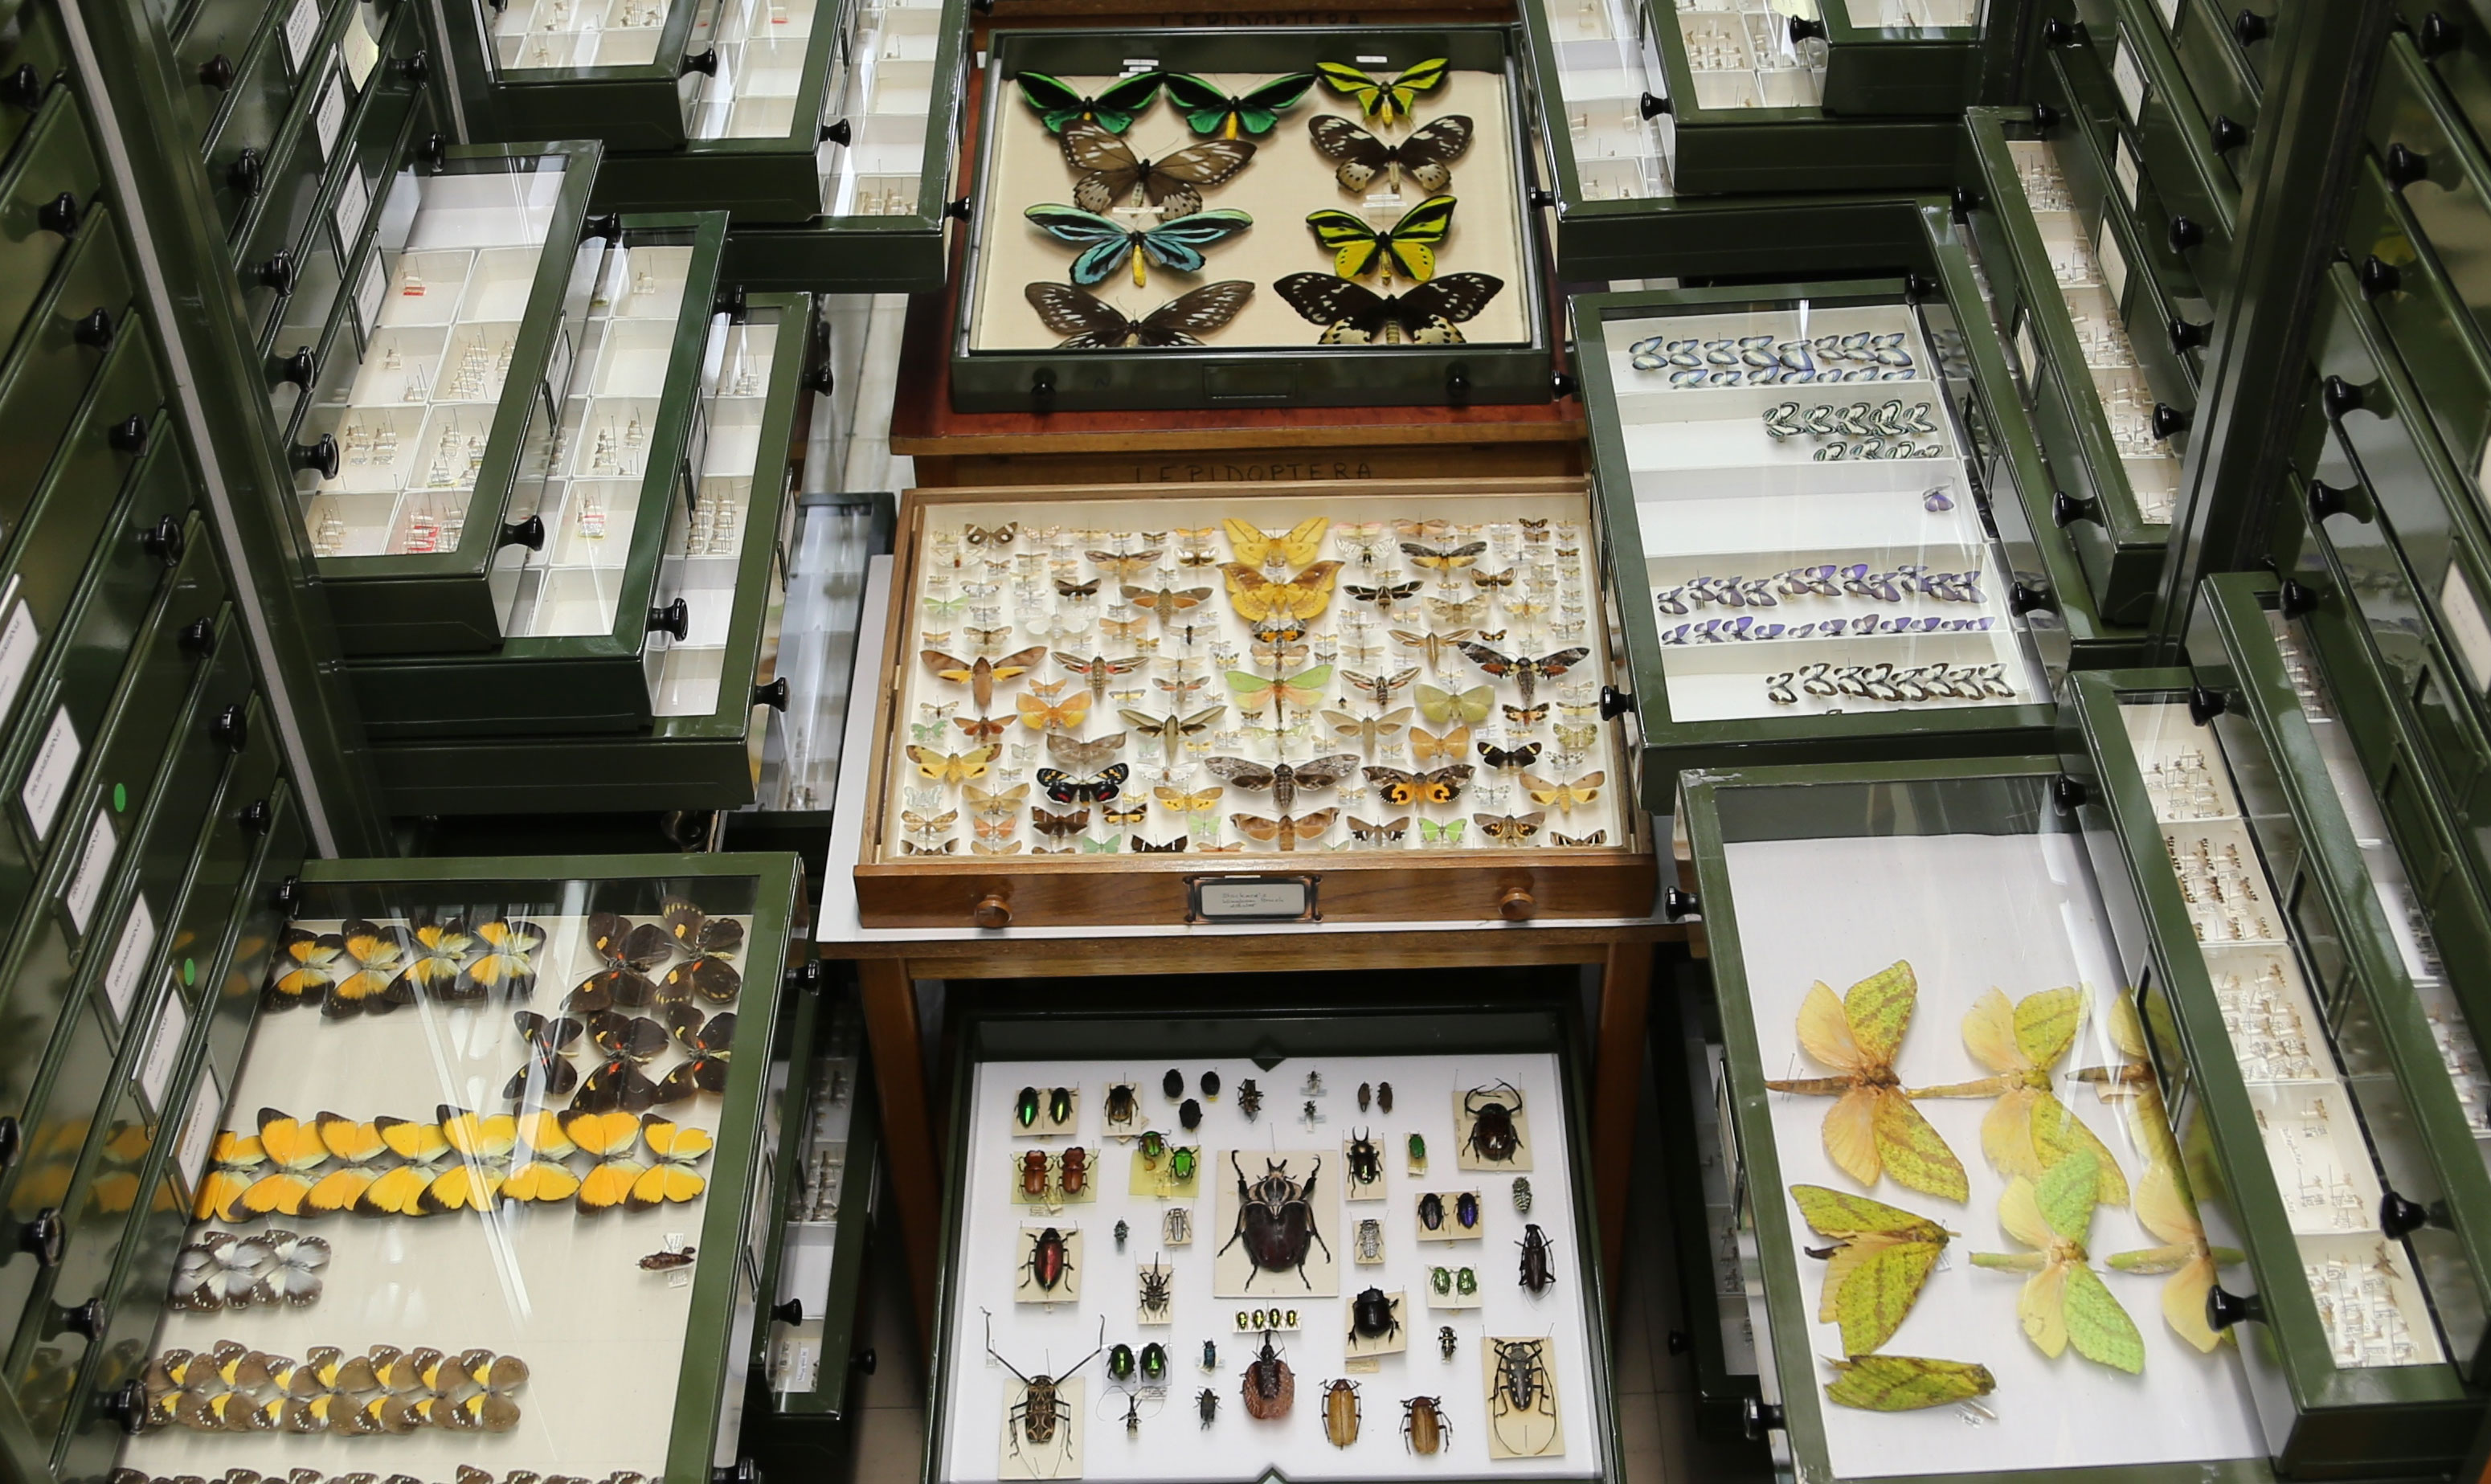 Cabinet drawers filled with various insects opened for display